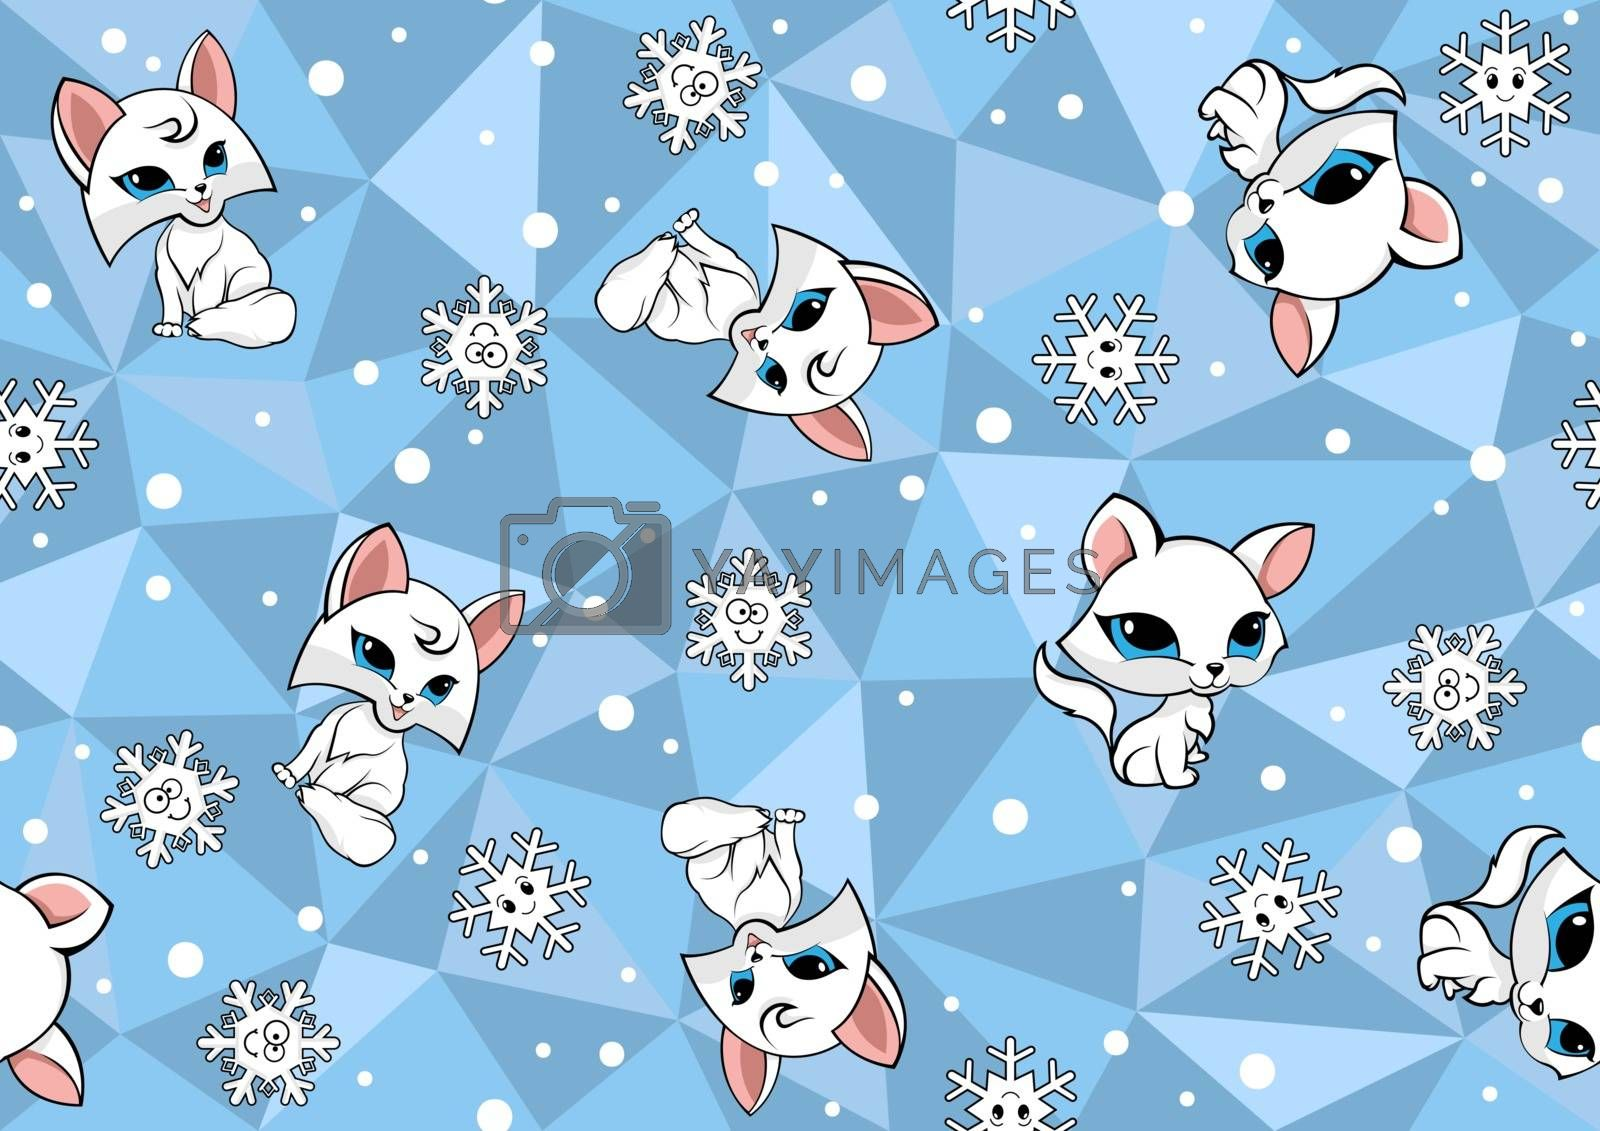 Seamless Baby Pattern with Arctic Fox on Blue Polygonal Background - Wintry Repetitive Print Texture, Vector Illustration